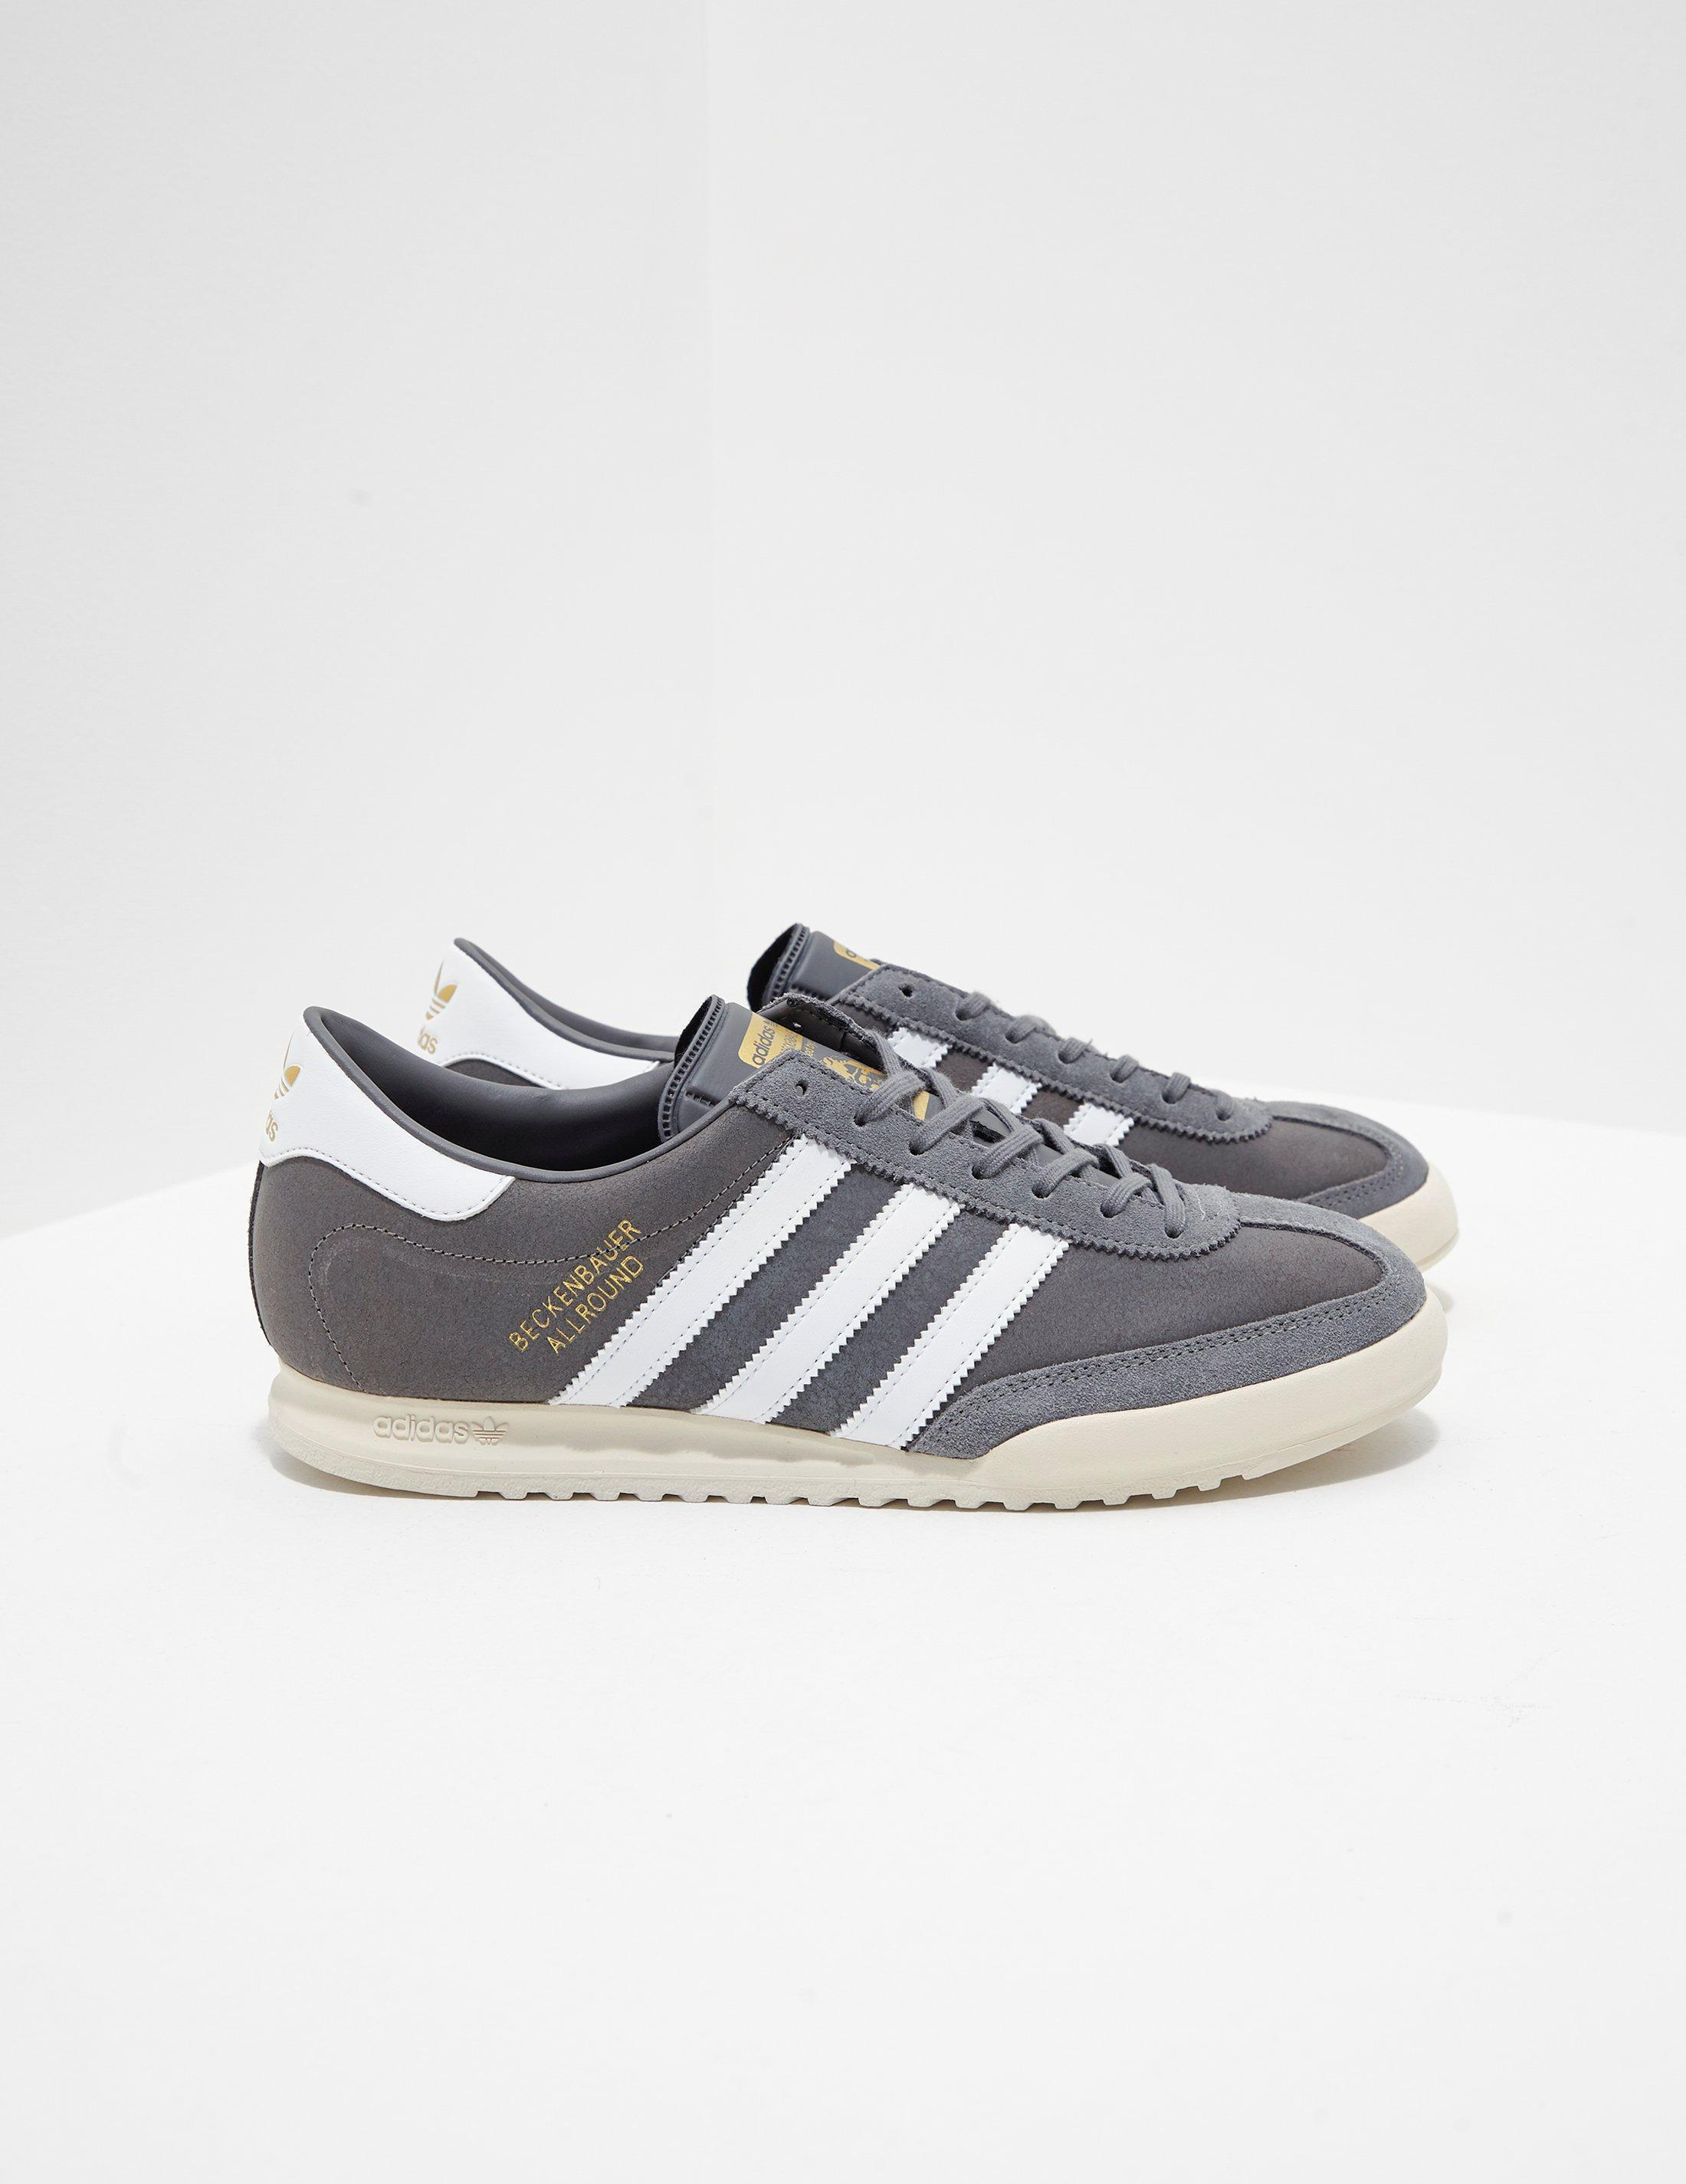 c1ce7dcbe0f1c Adidas Originals - Gray Beckenbauer - Exclusively To Tessuti Grey for Men -  Lyst. View fullscreen